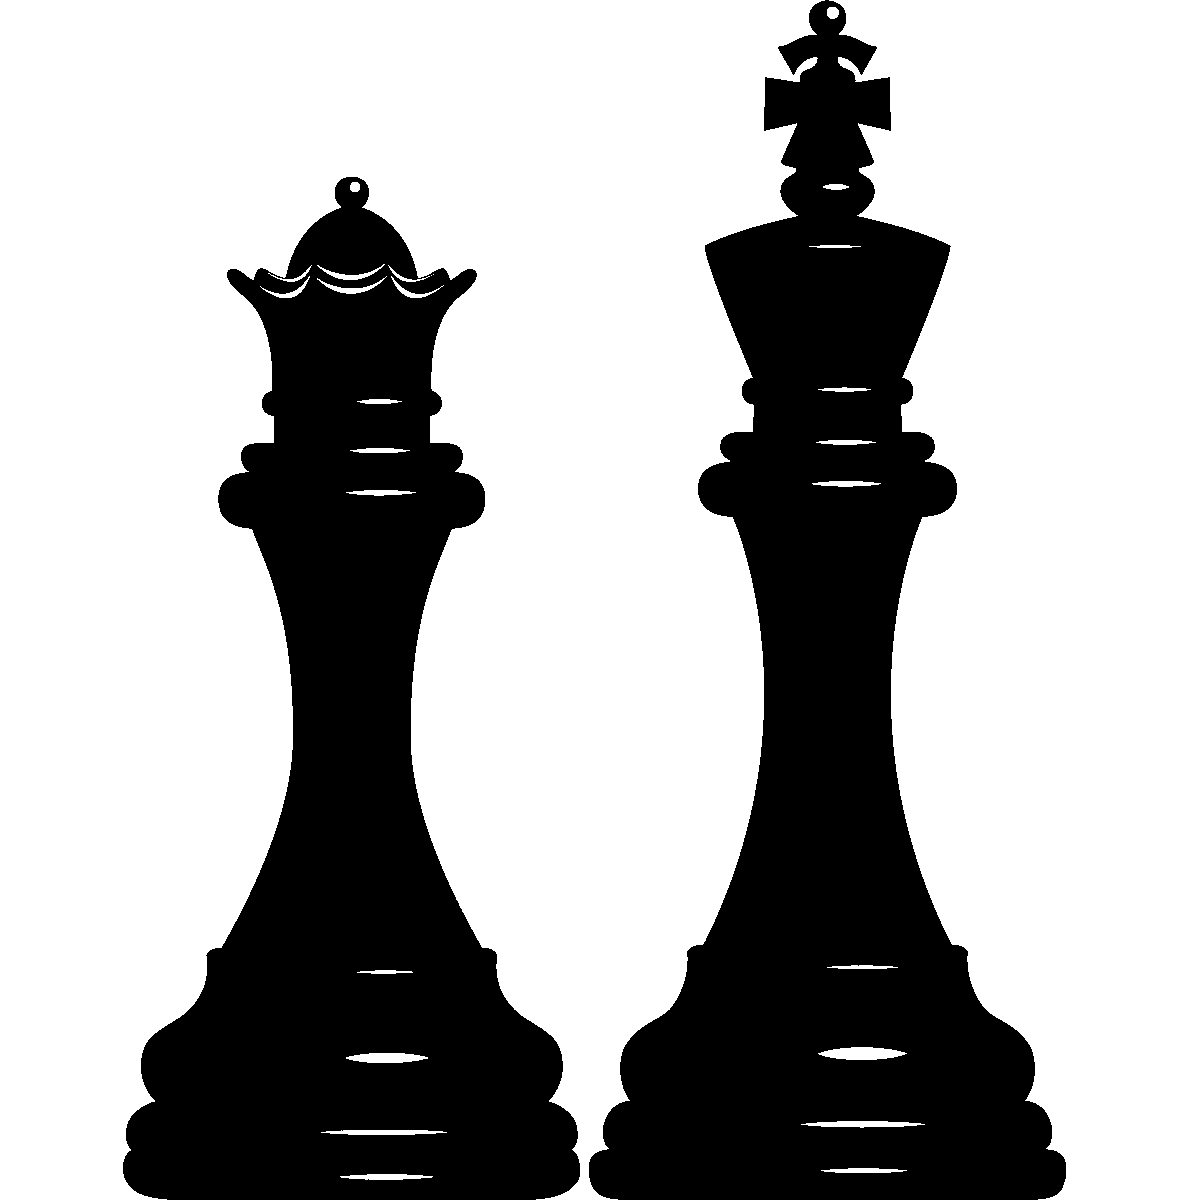 Chess png image free. King clipart kind queen